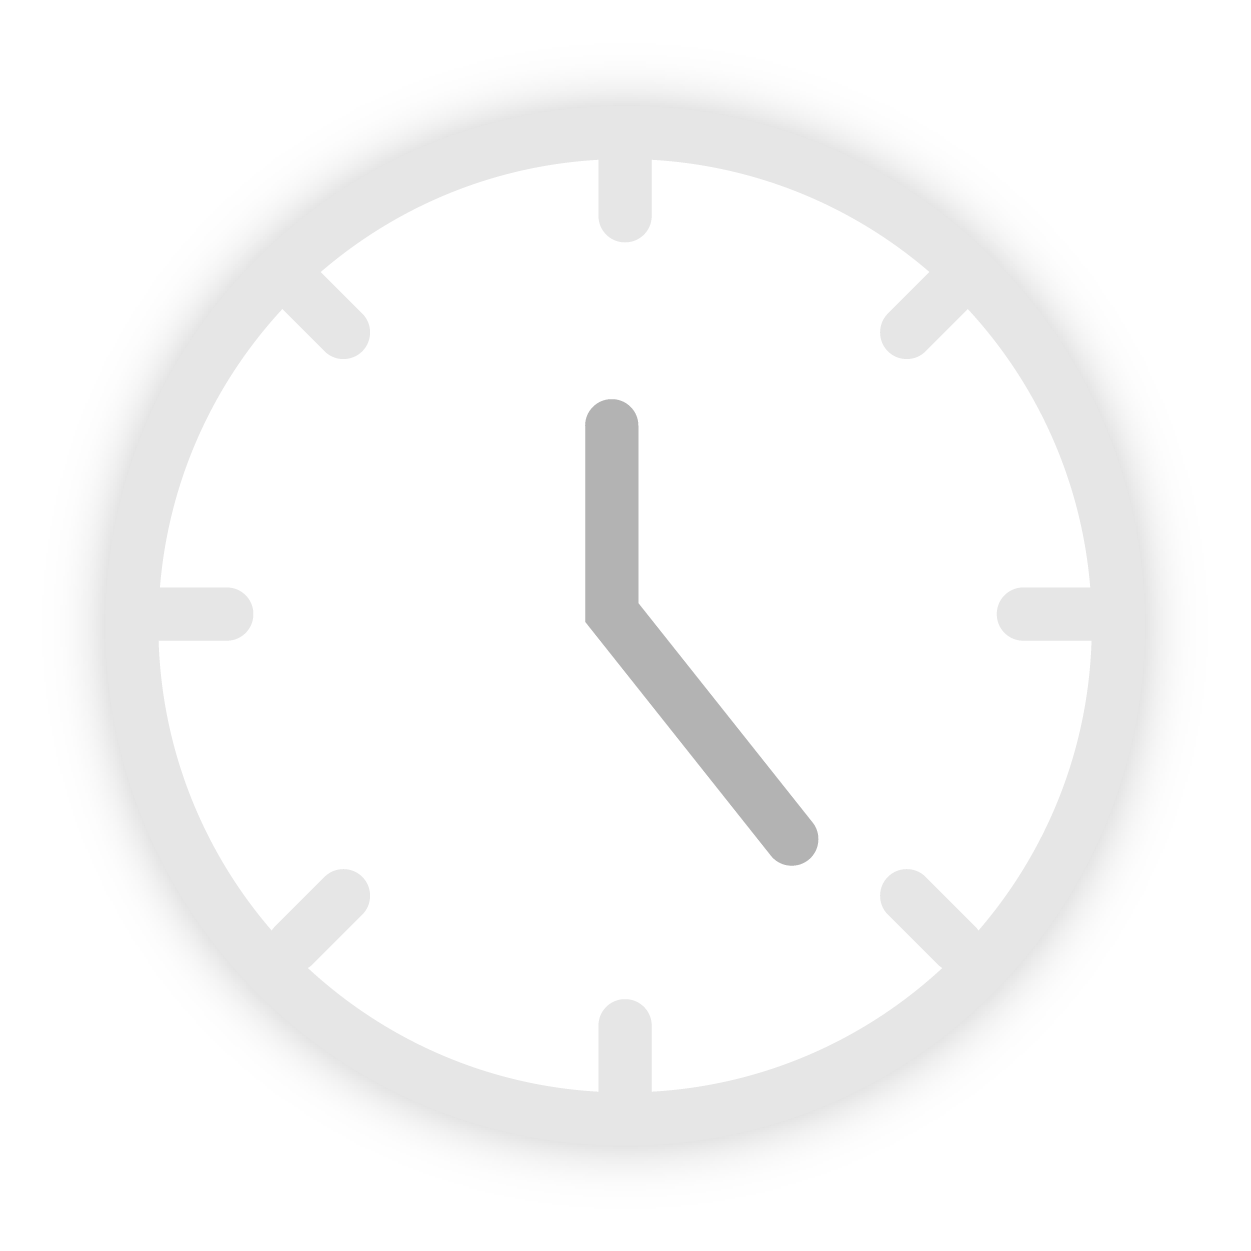 design/presentation-decks/_general-assets/icons/illustrated-icons/clock-icon.png